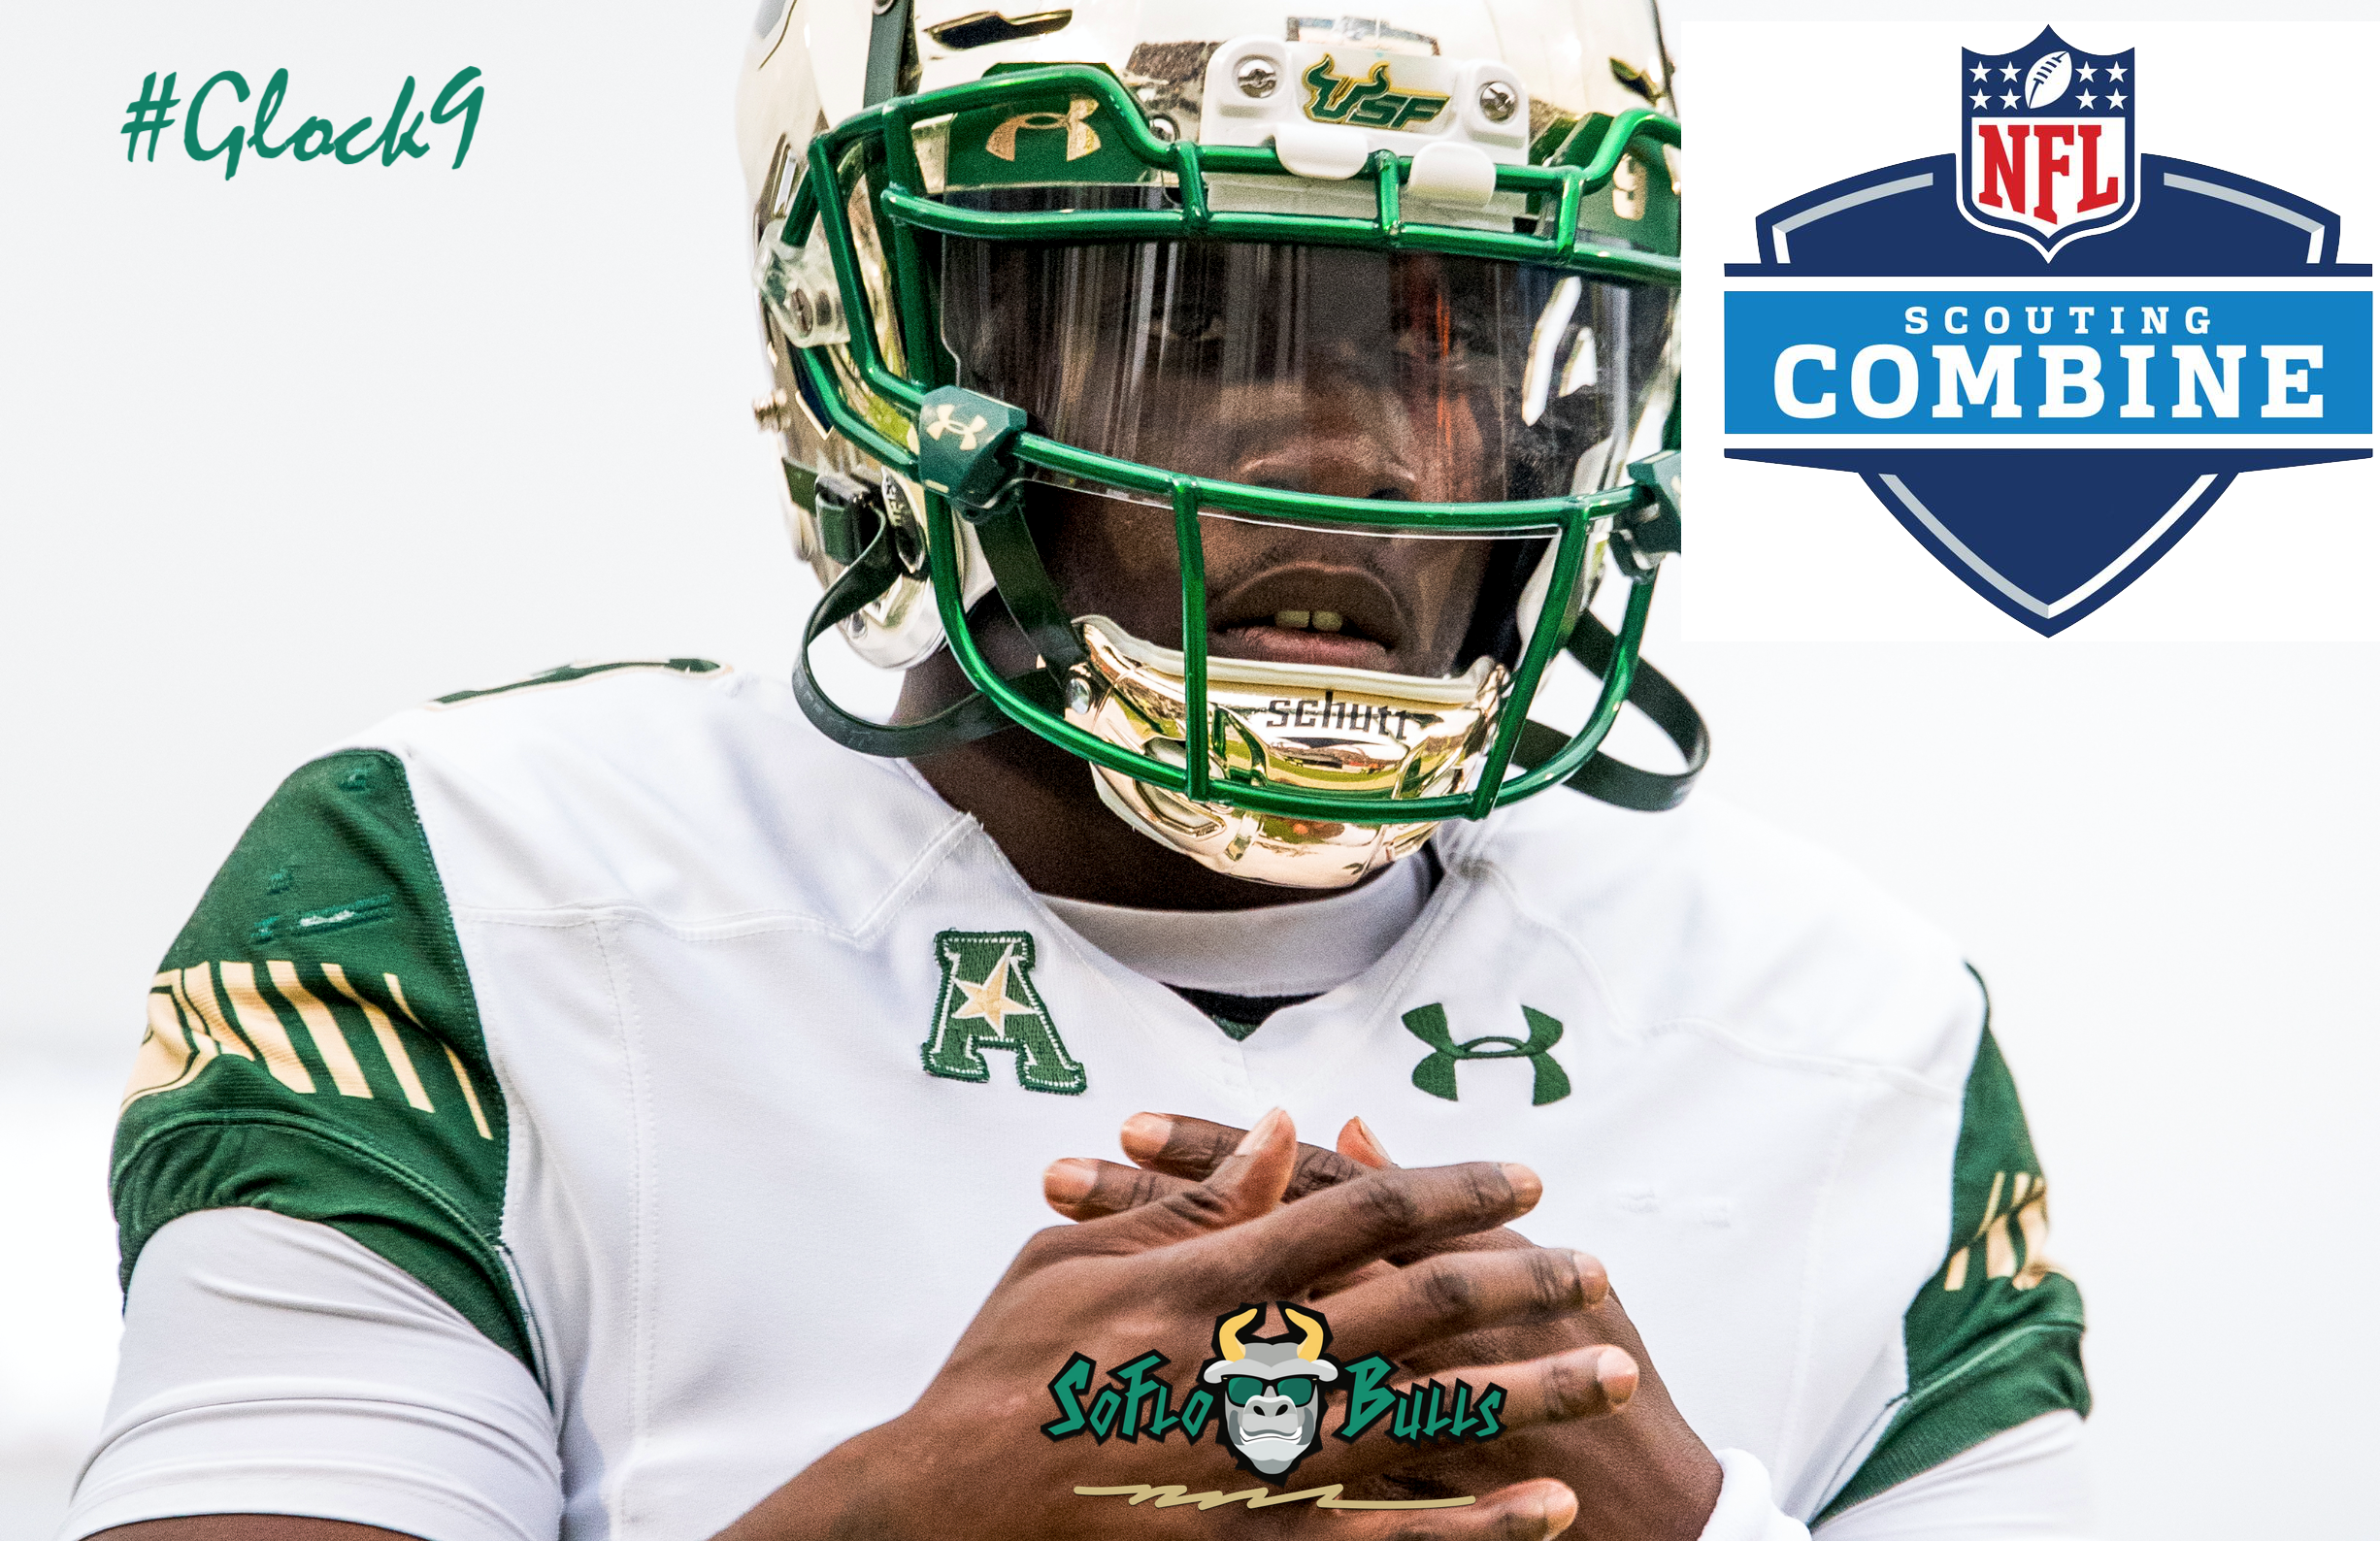 AUDIO: USF QB Quinton Flowers Talks Combine And Draft on 620WDAE | SoFloBulls.com